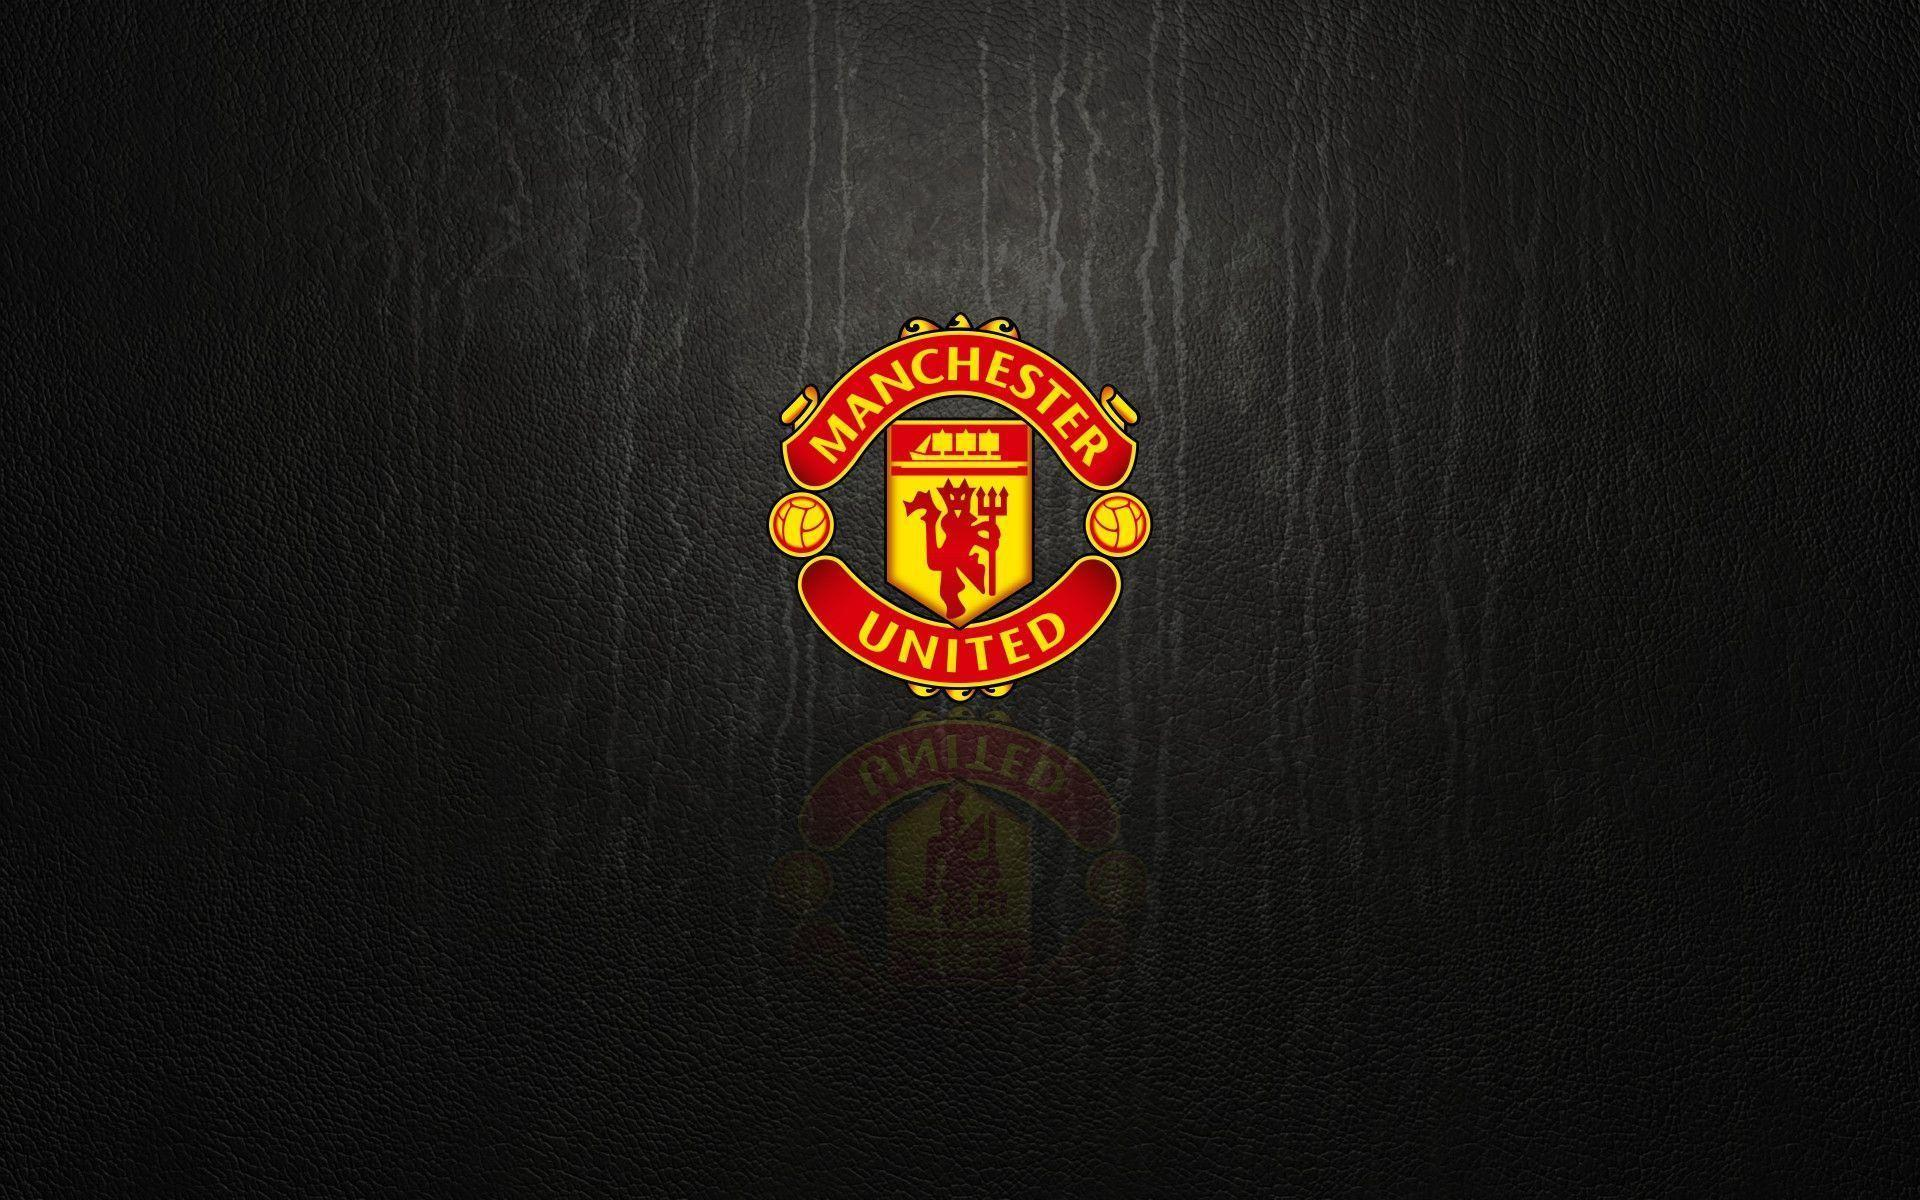 Manchester United Hd Wallpapers 1080p Wallpapersimages Org